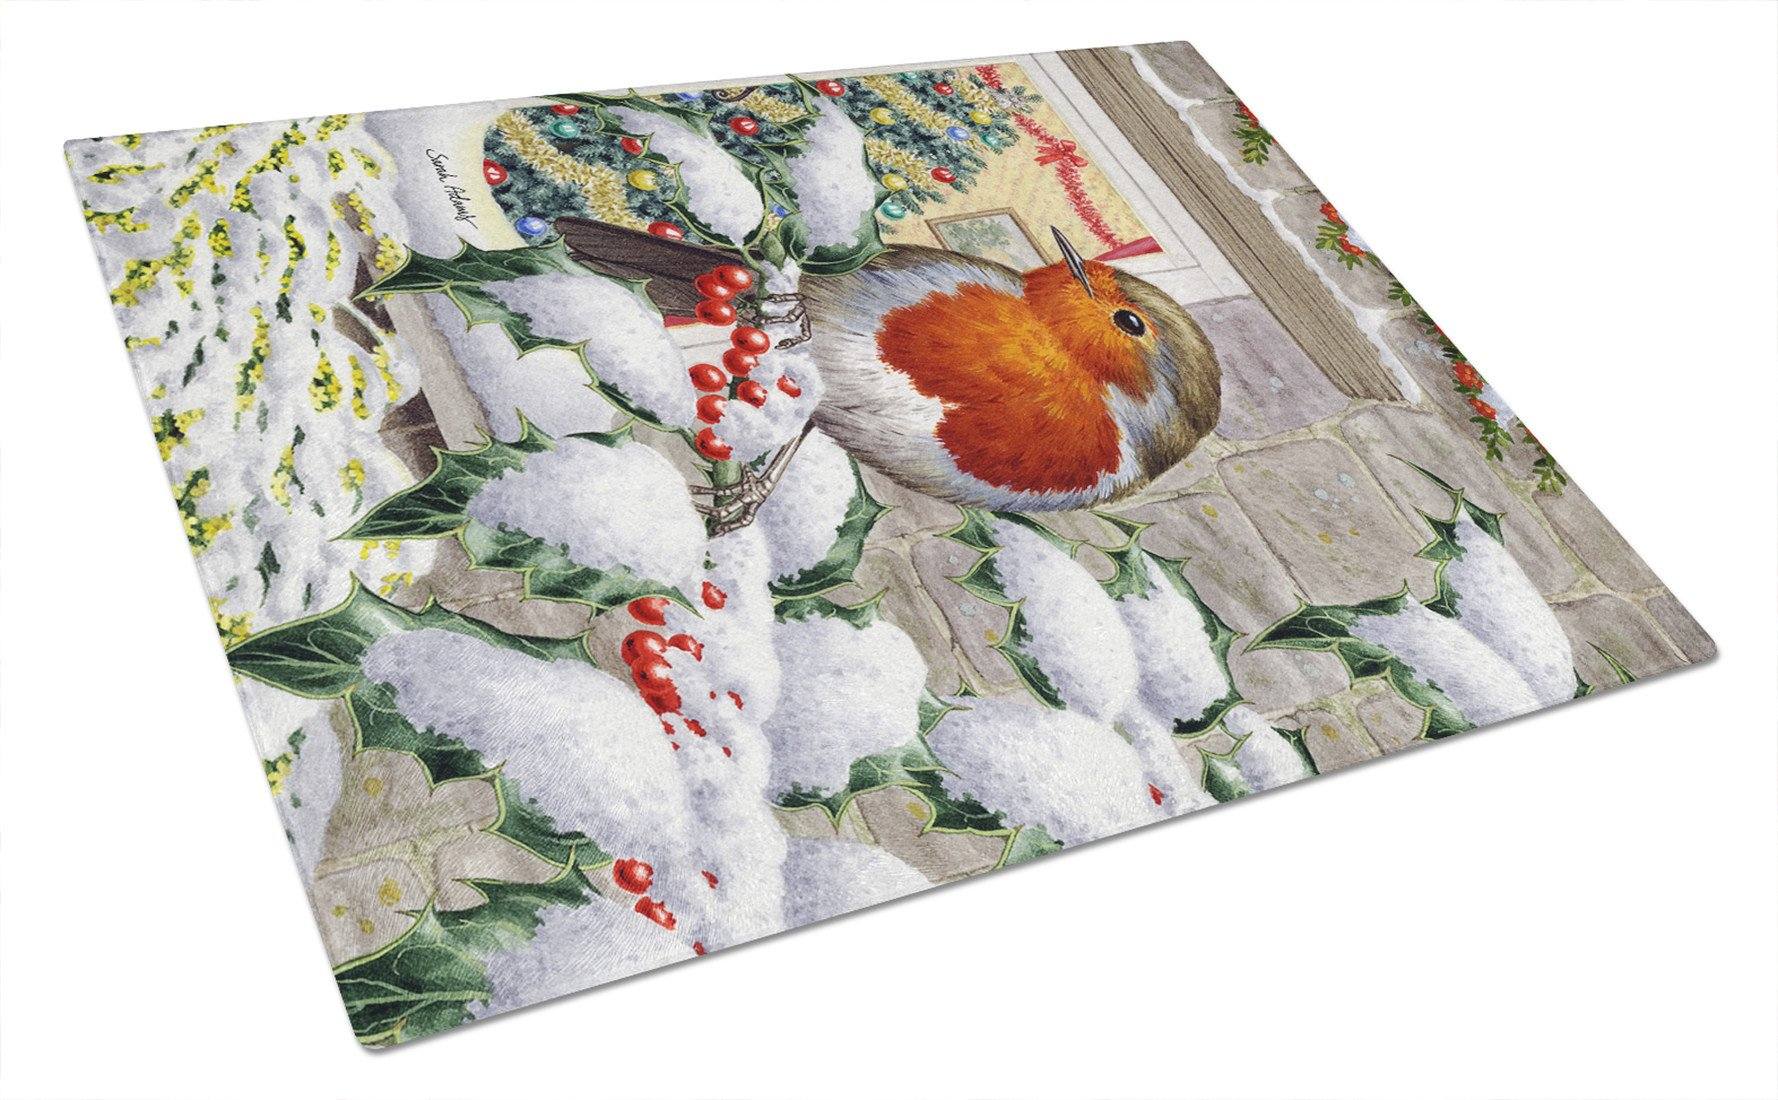 European Robin at the Window Glass Cutting Board Large ASA2089LCB by Caroline's Treasures